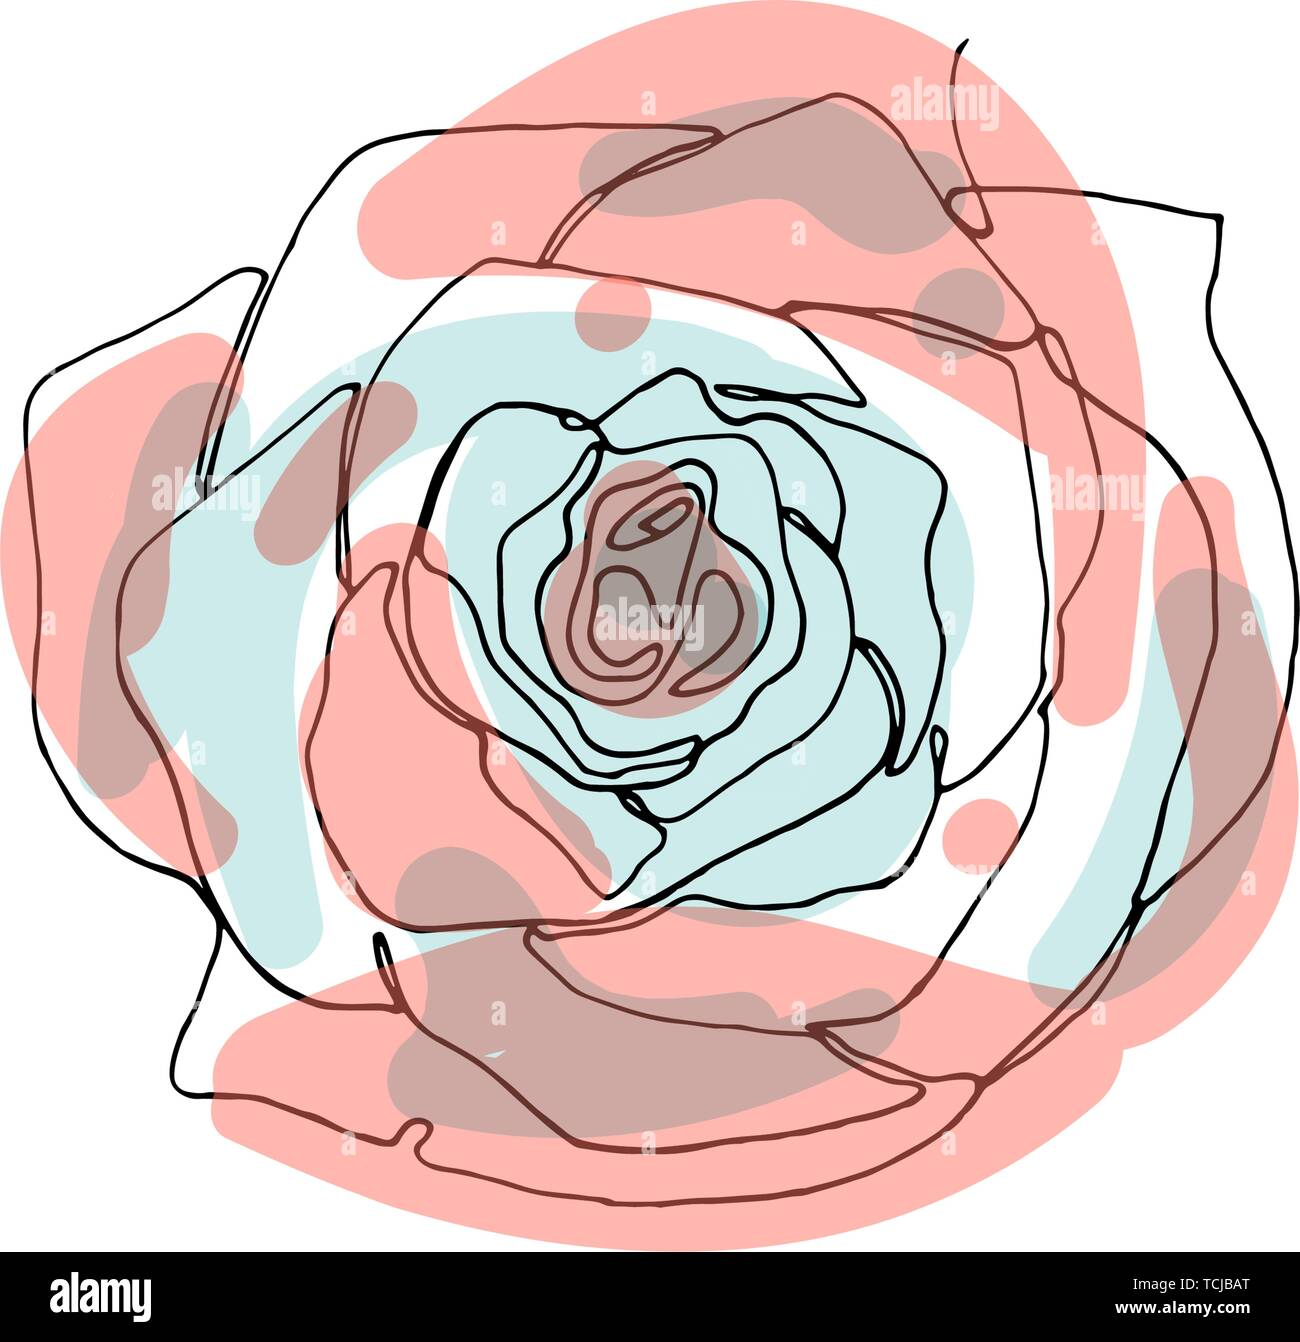 Hand Drawn Minimalistic Rose Flower One Single Continuous Black Line Simple Drawing Isolated On White Background Stock Vector Illustration Stock Vector Image Art Alamy